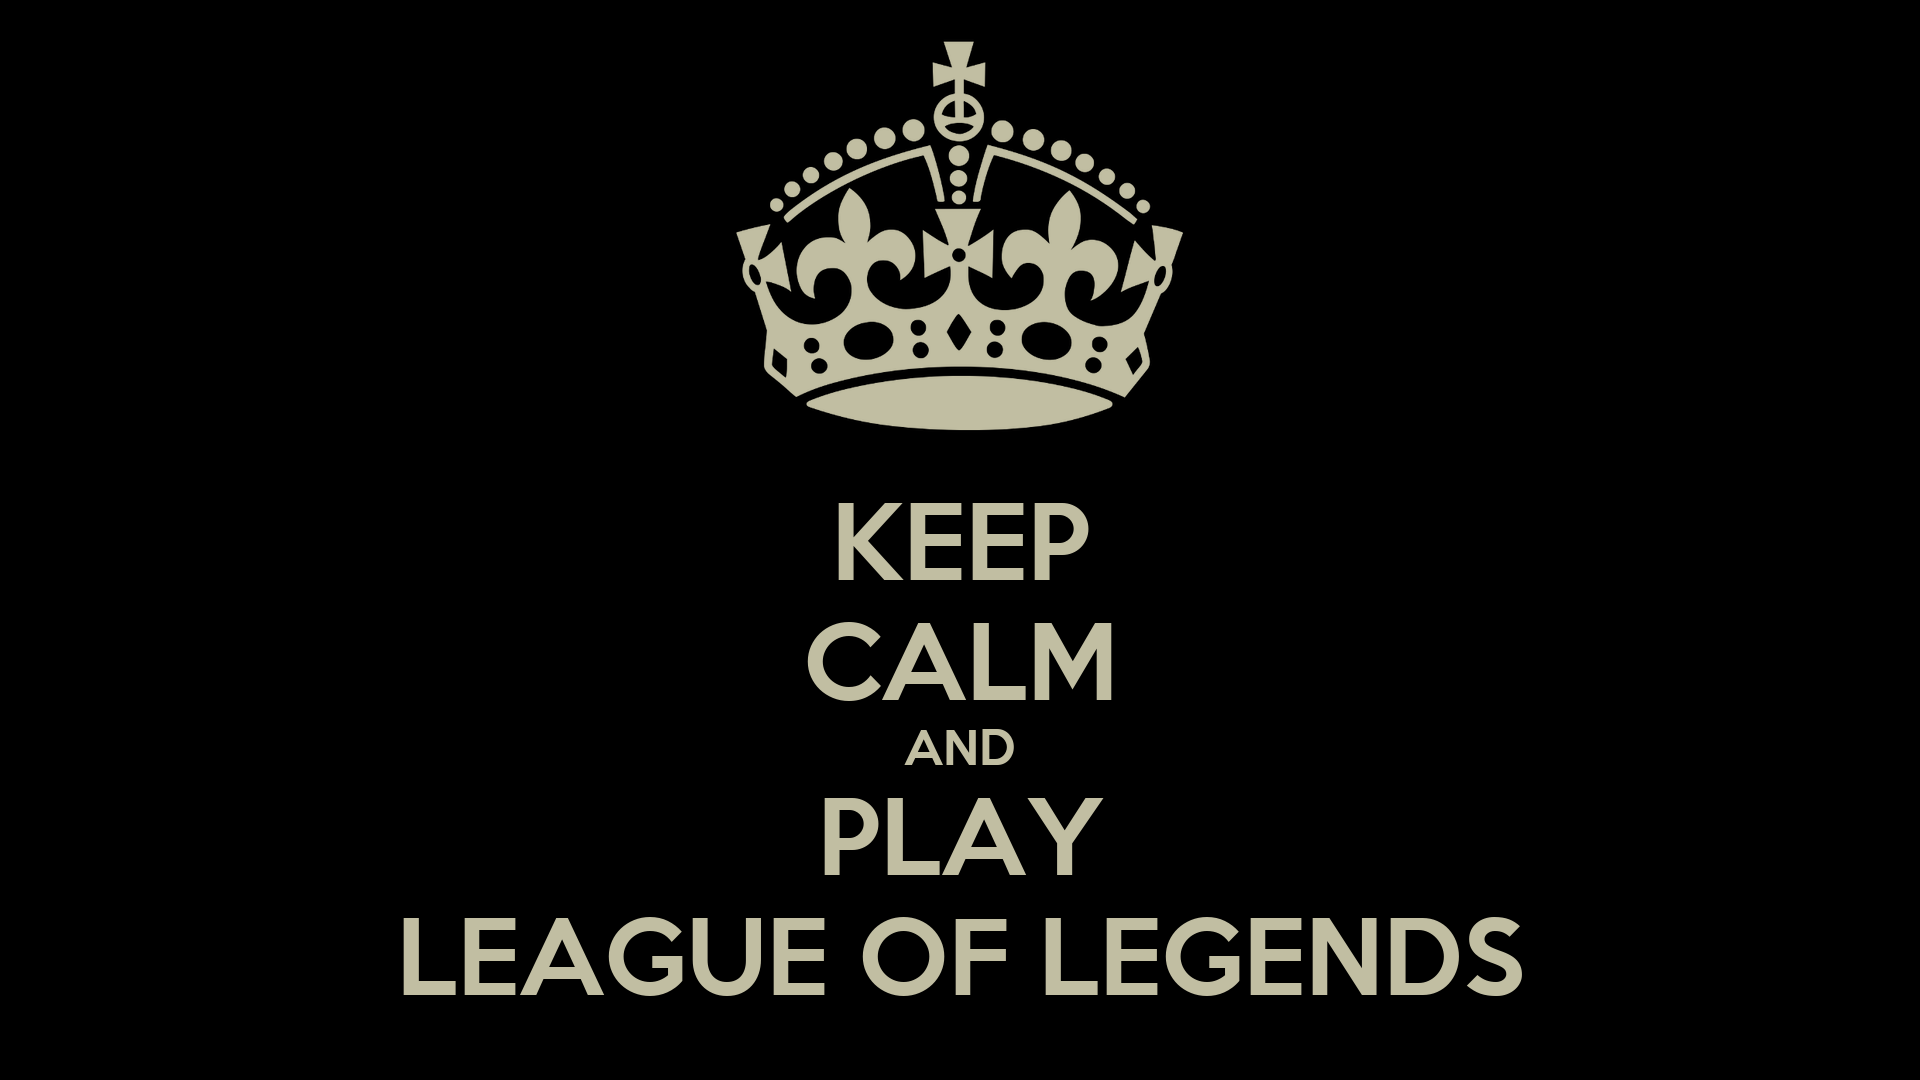 Programmer Quotes Wallpaper Hd Keep Calm And Play League Of Legends Poster Dasda Keep